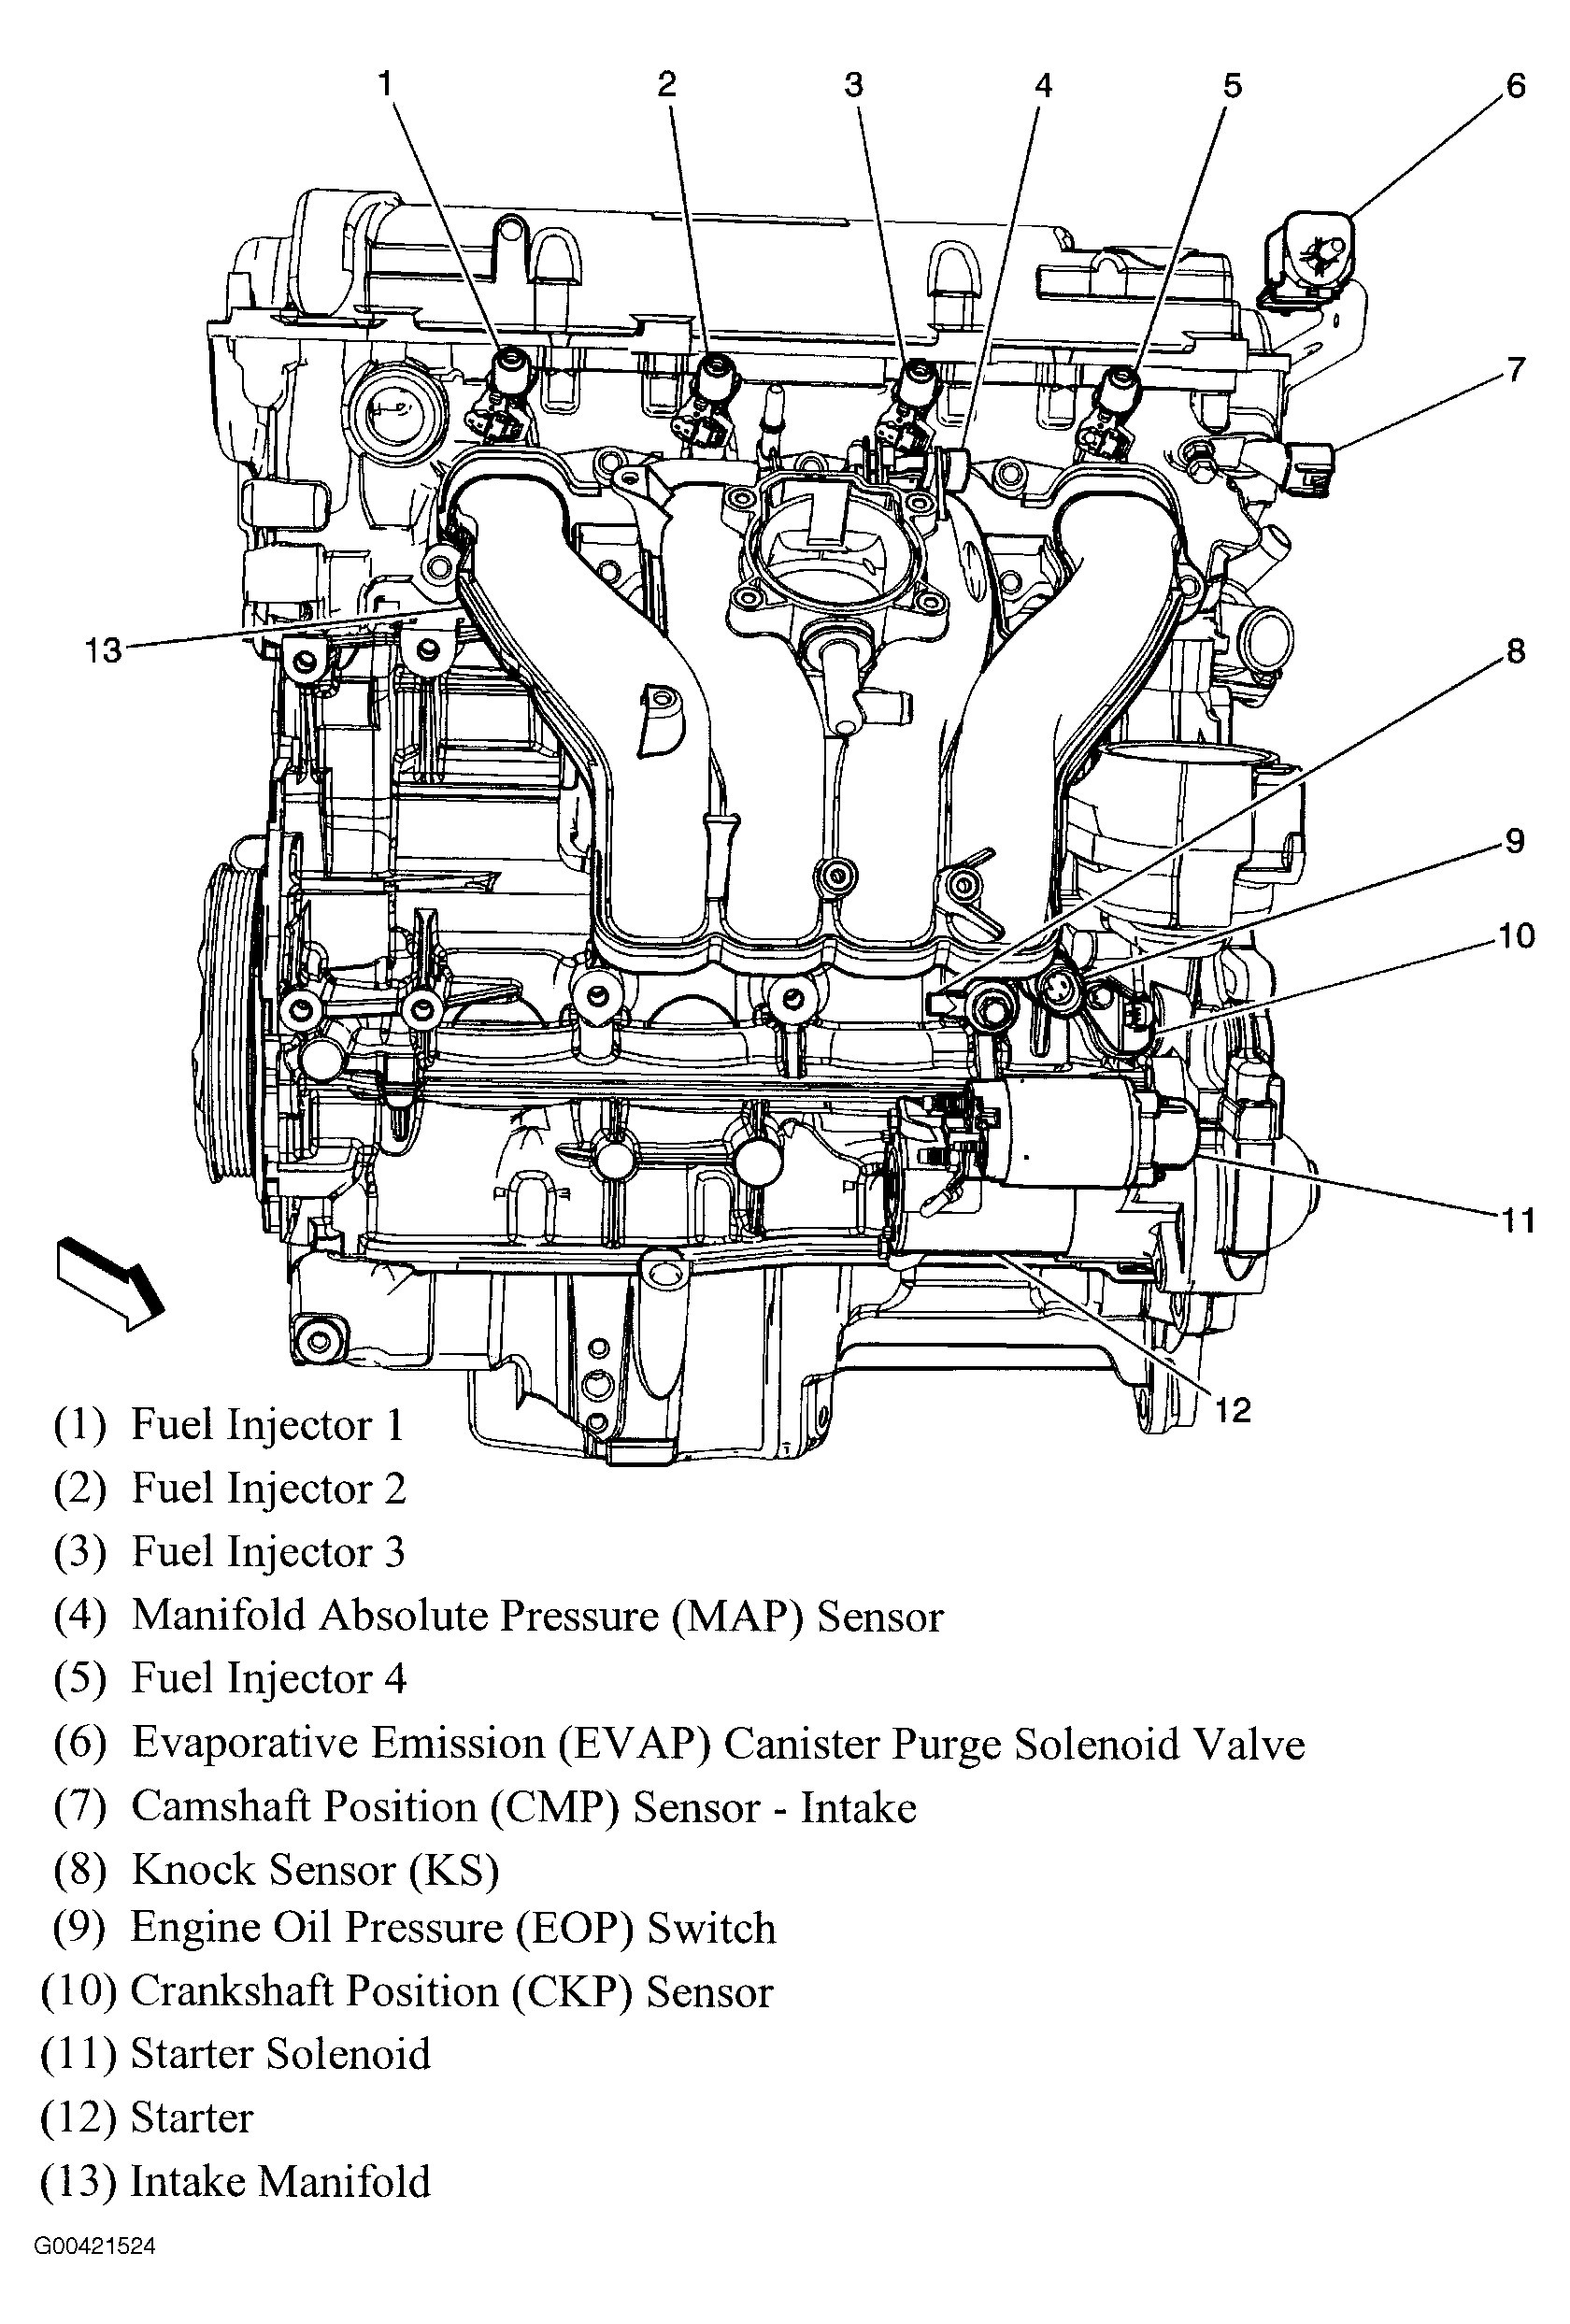 hight resolution of 2011 aveo engine diagram blog diagram schema2011 chevy aveo engine diagram thermostat wiring diagram database 2011